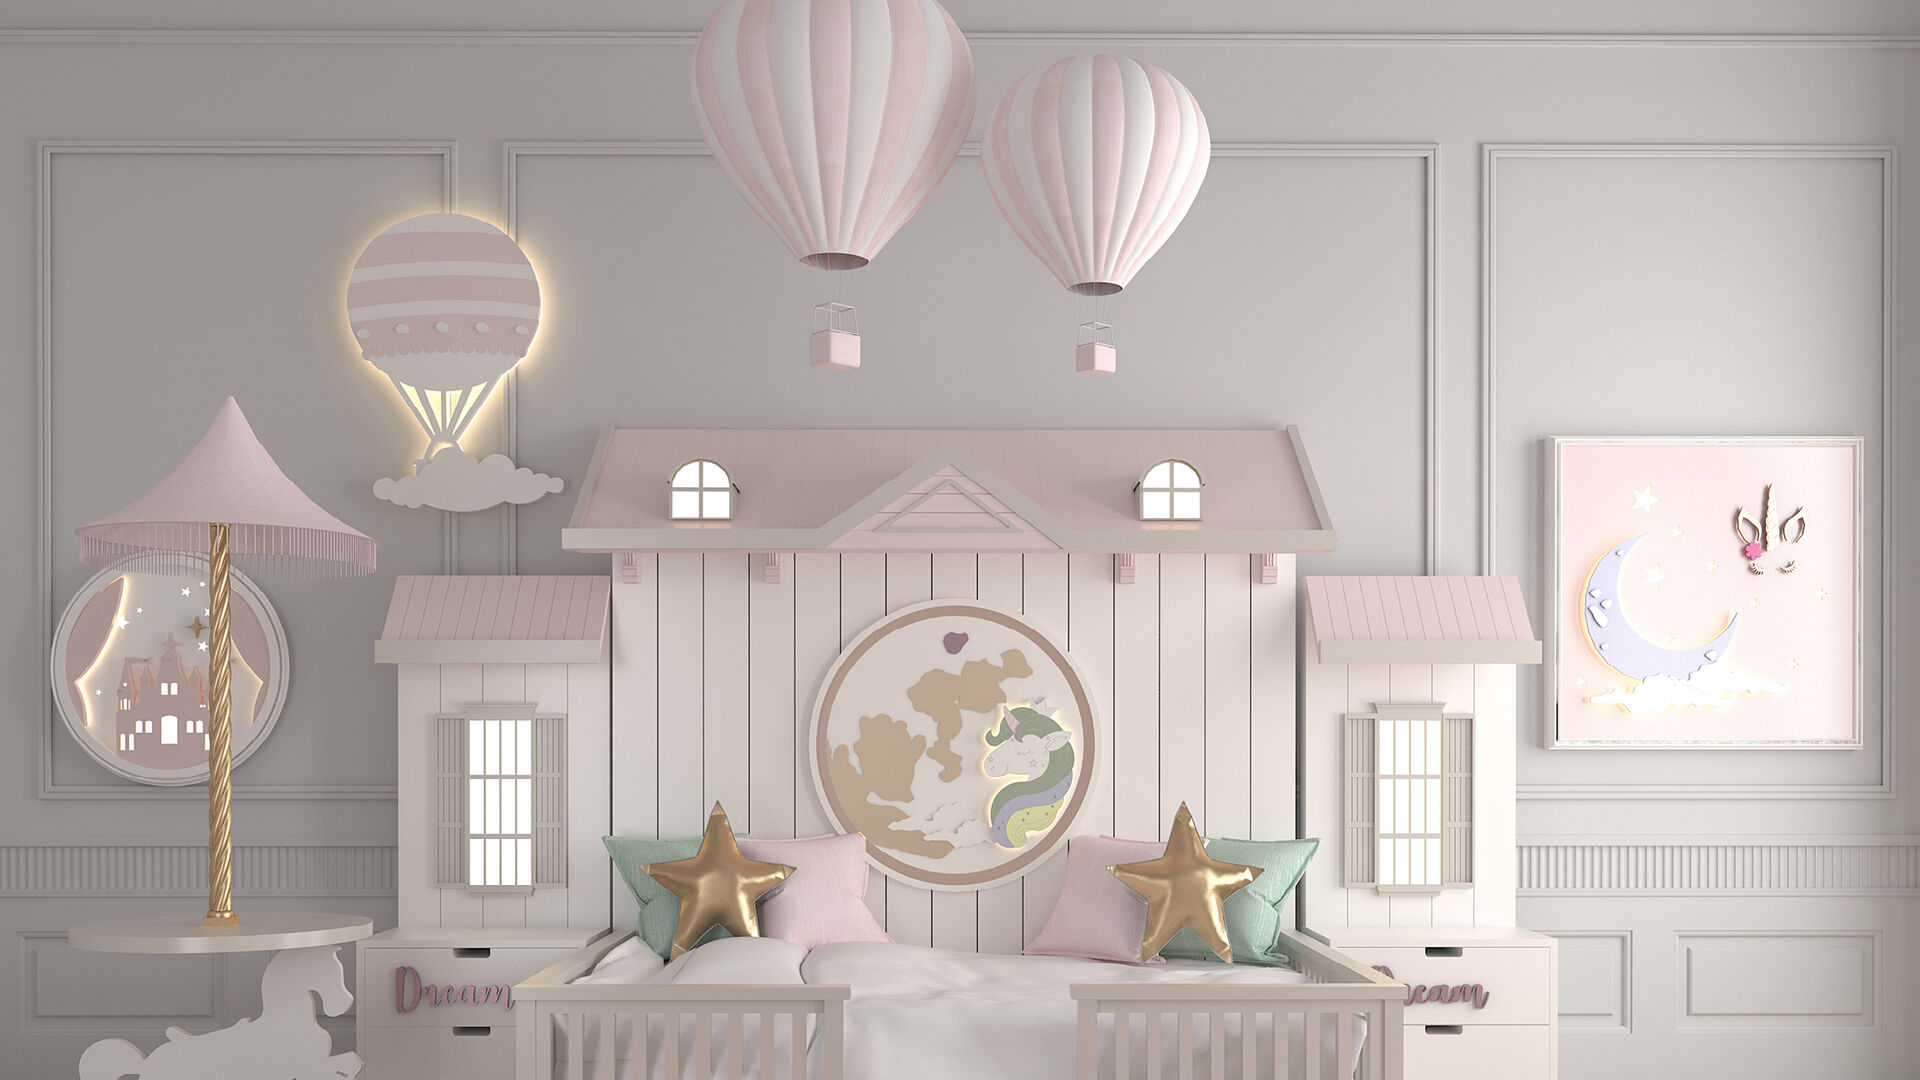 3MOMS Collaborates With Joelle Mardinian For An Exclusive New Décor Collection